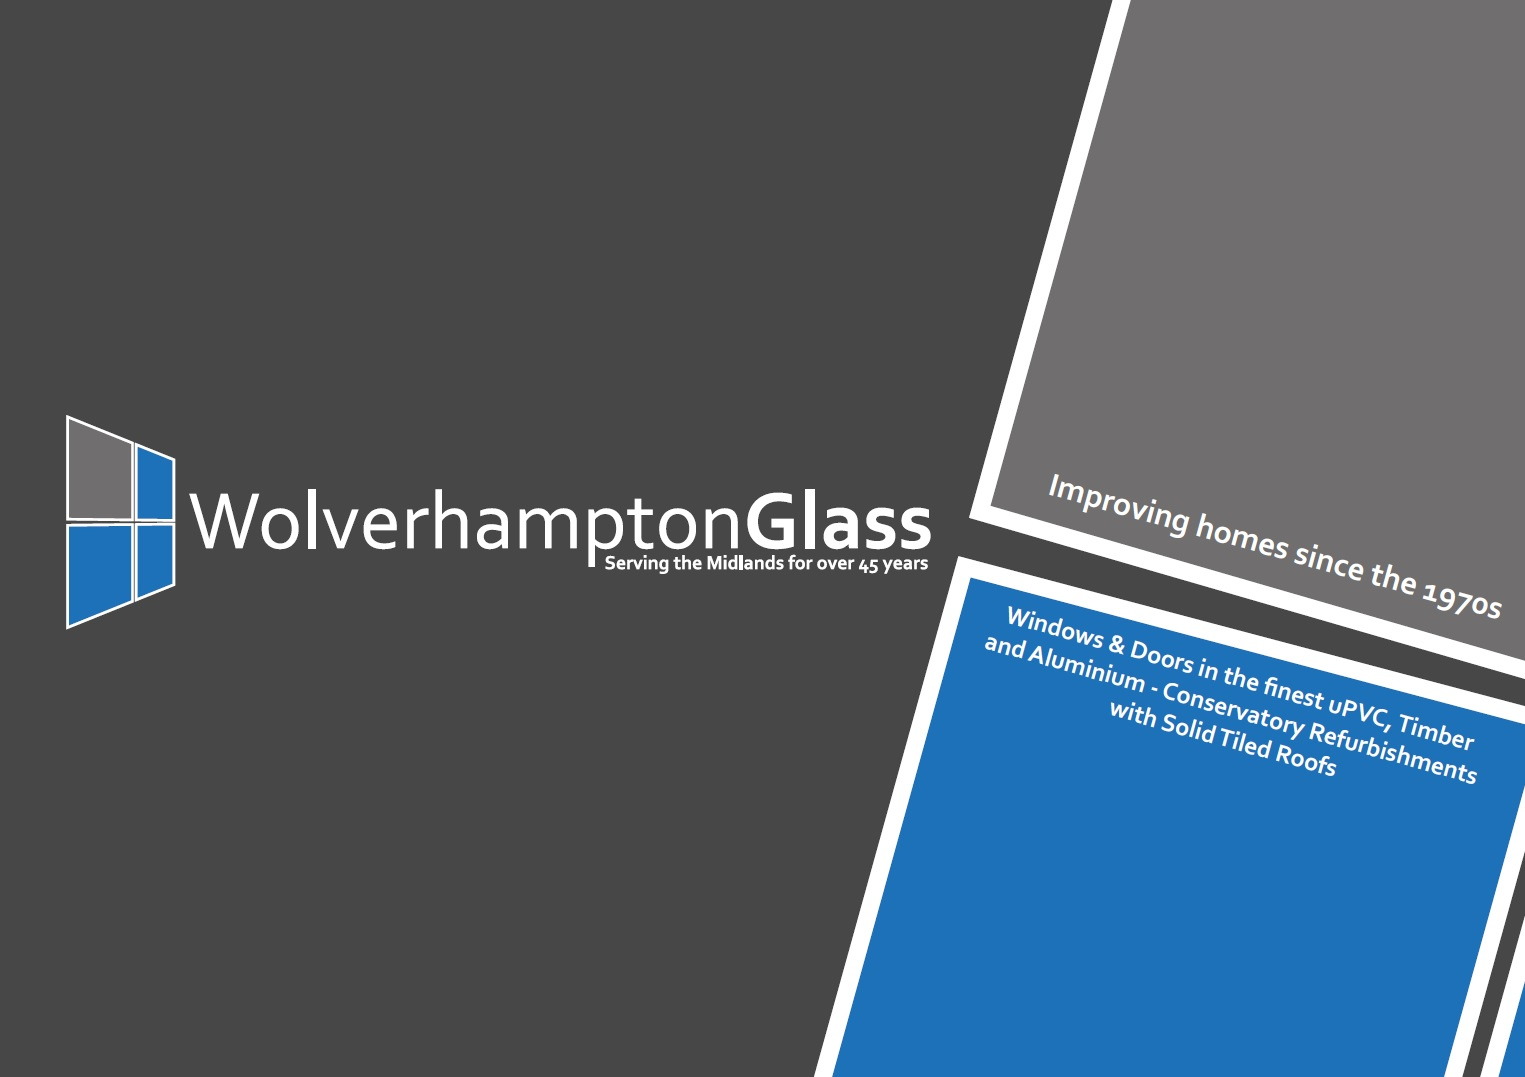 Wolverhampton glass catalog front cover